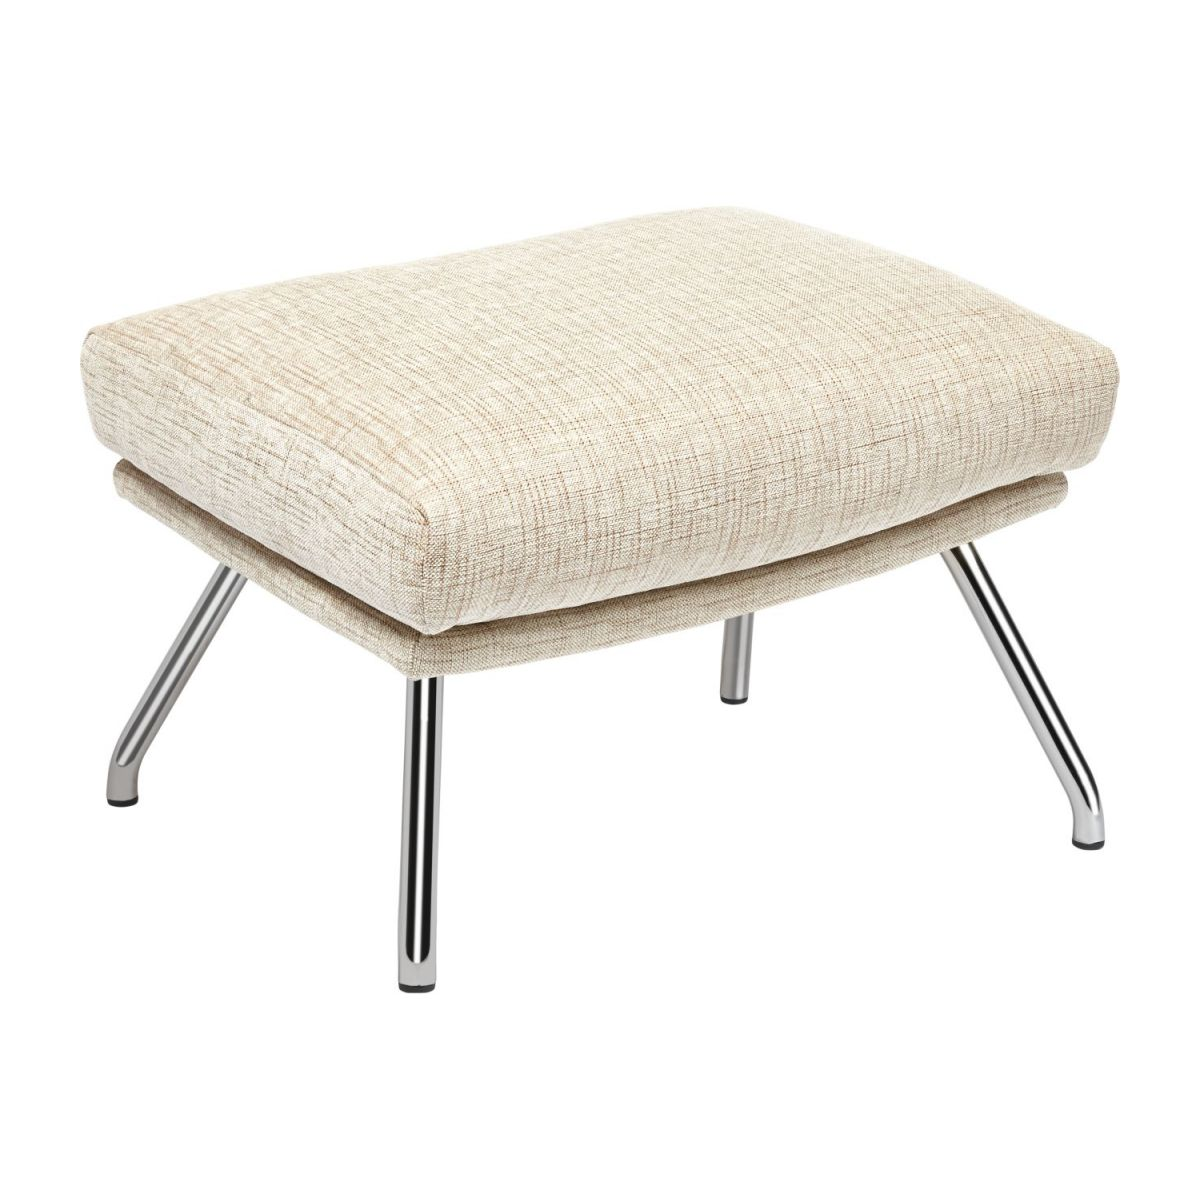 Footstool in Ancio fabric, nature with chromed metal legs n°1